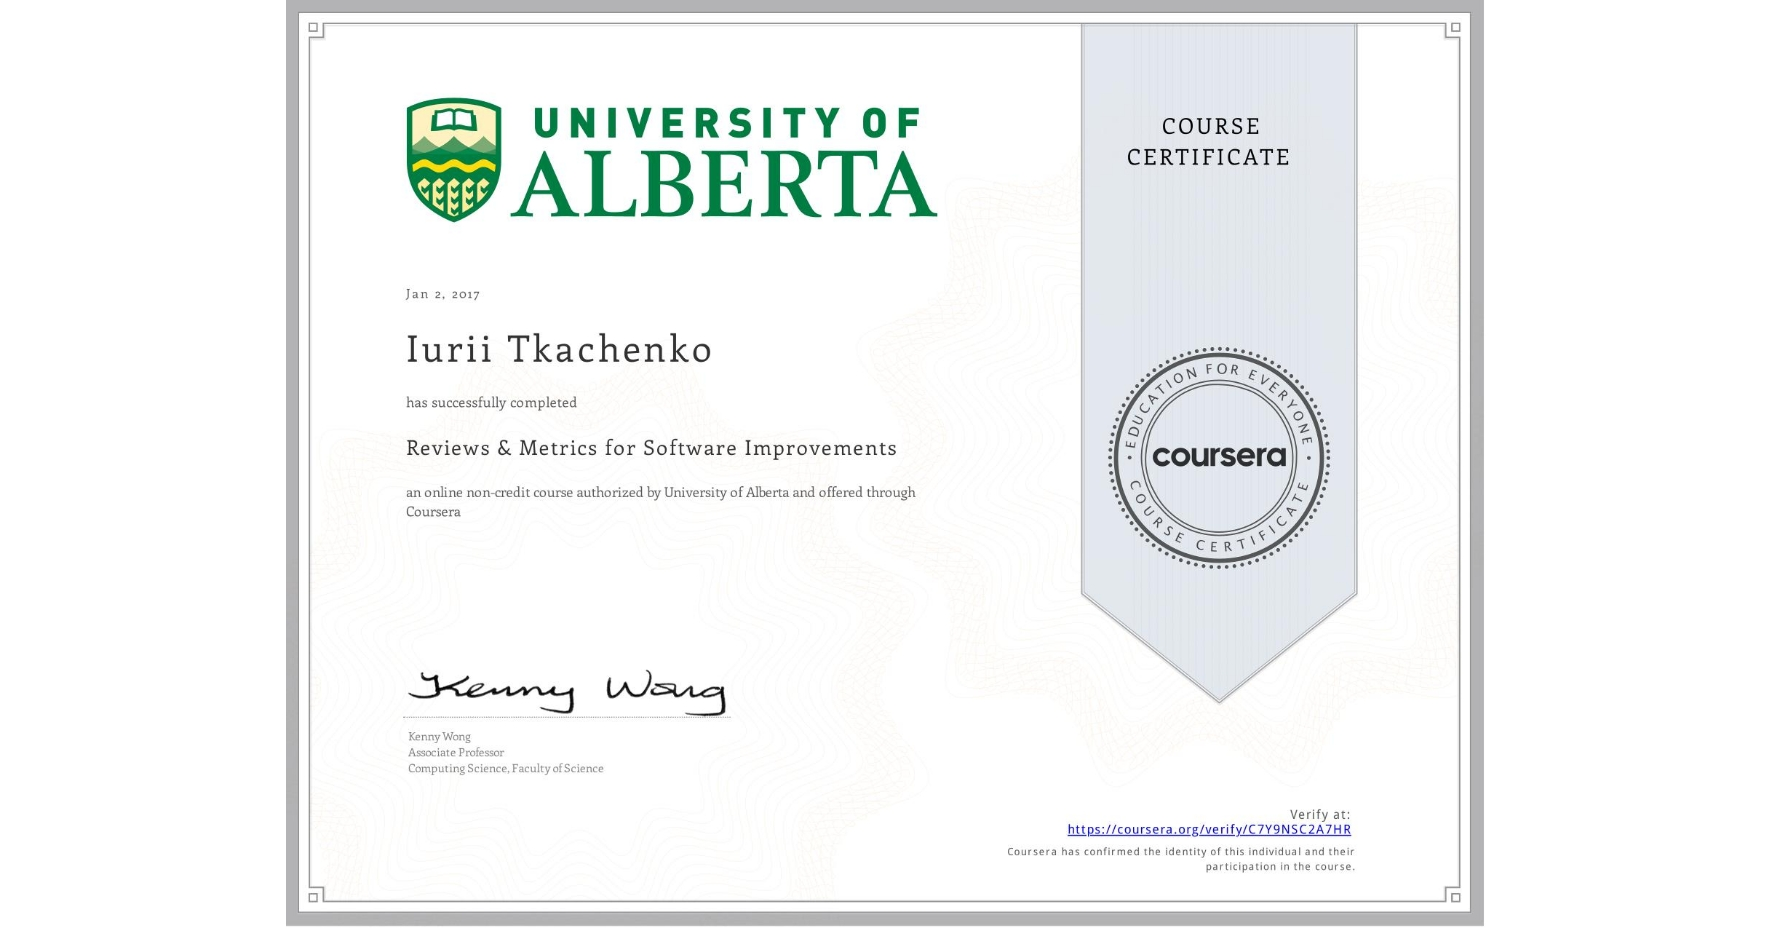 View certificate for Iurii Tkachenko, Reviews & Metrics for Software Improvements, an online non-credit course authorized by University of Alberta and offered through Coursera